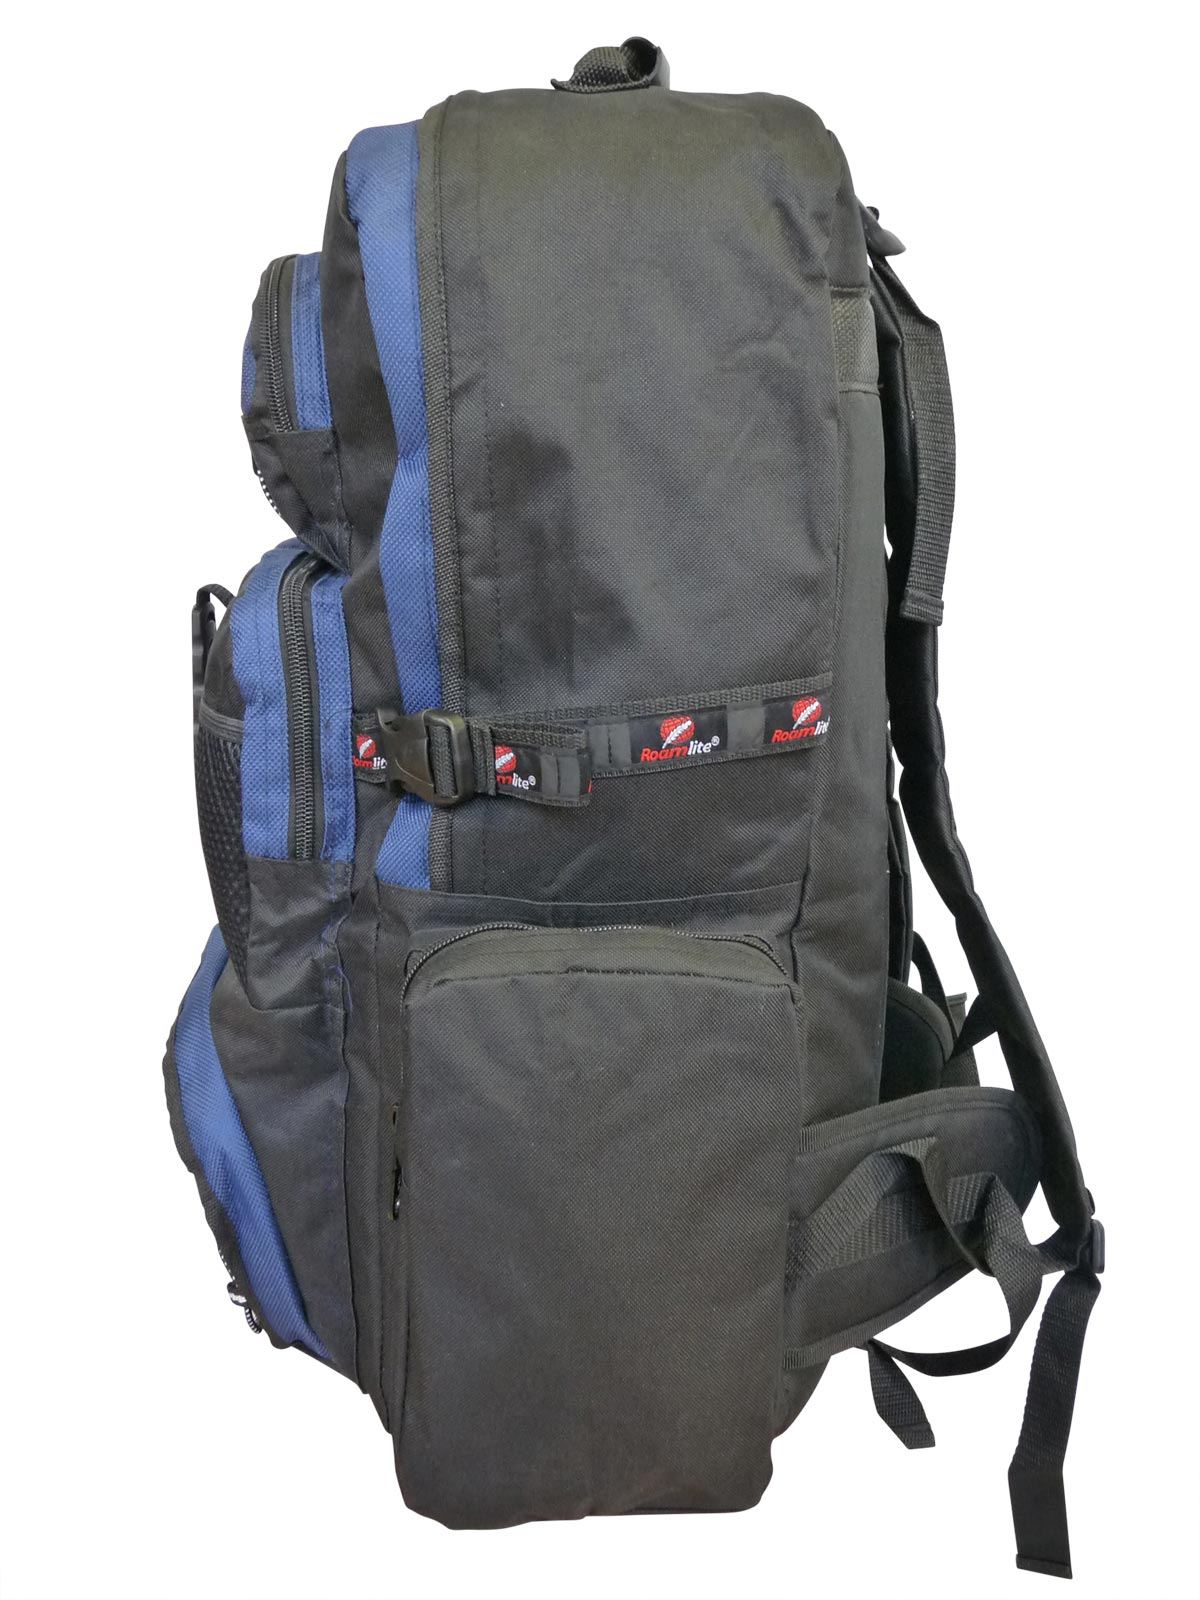 55 Litre Backpack Roamlite RL01KNss